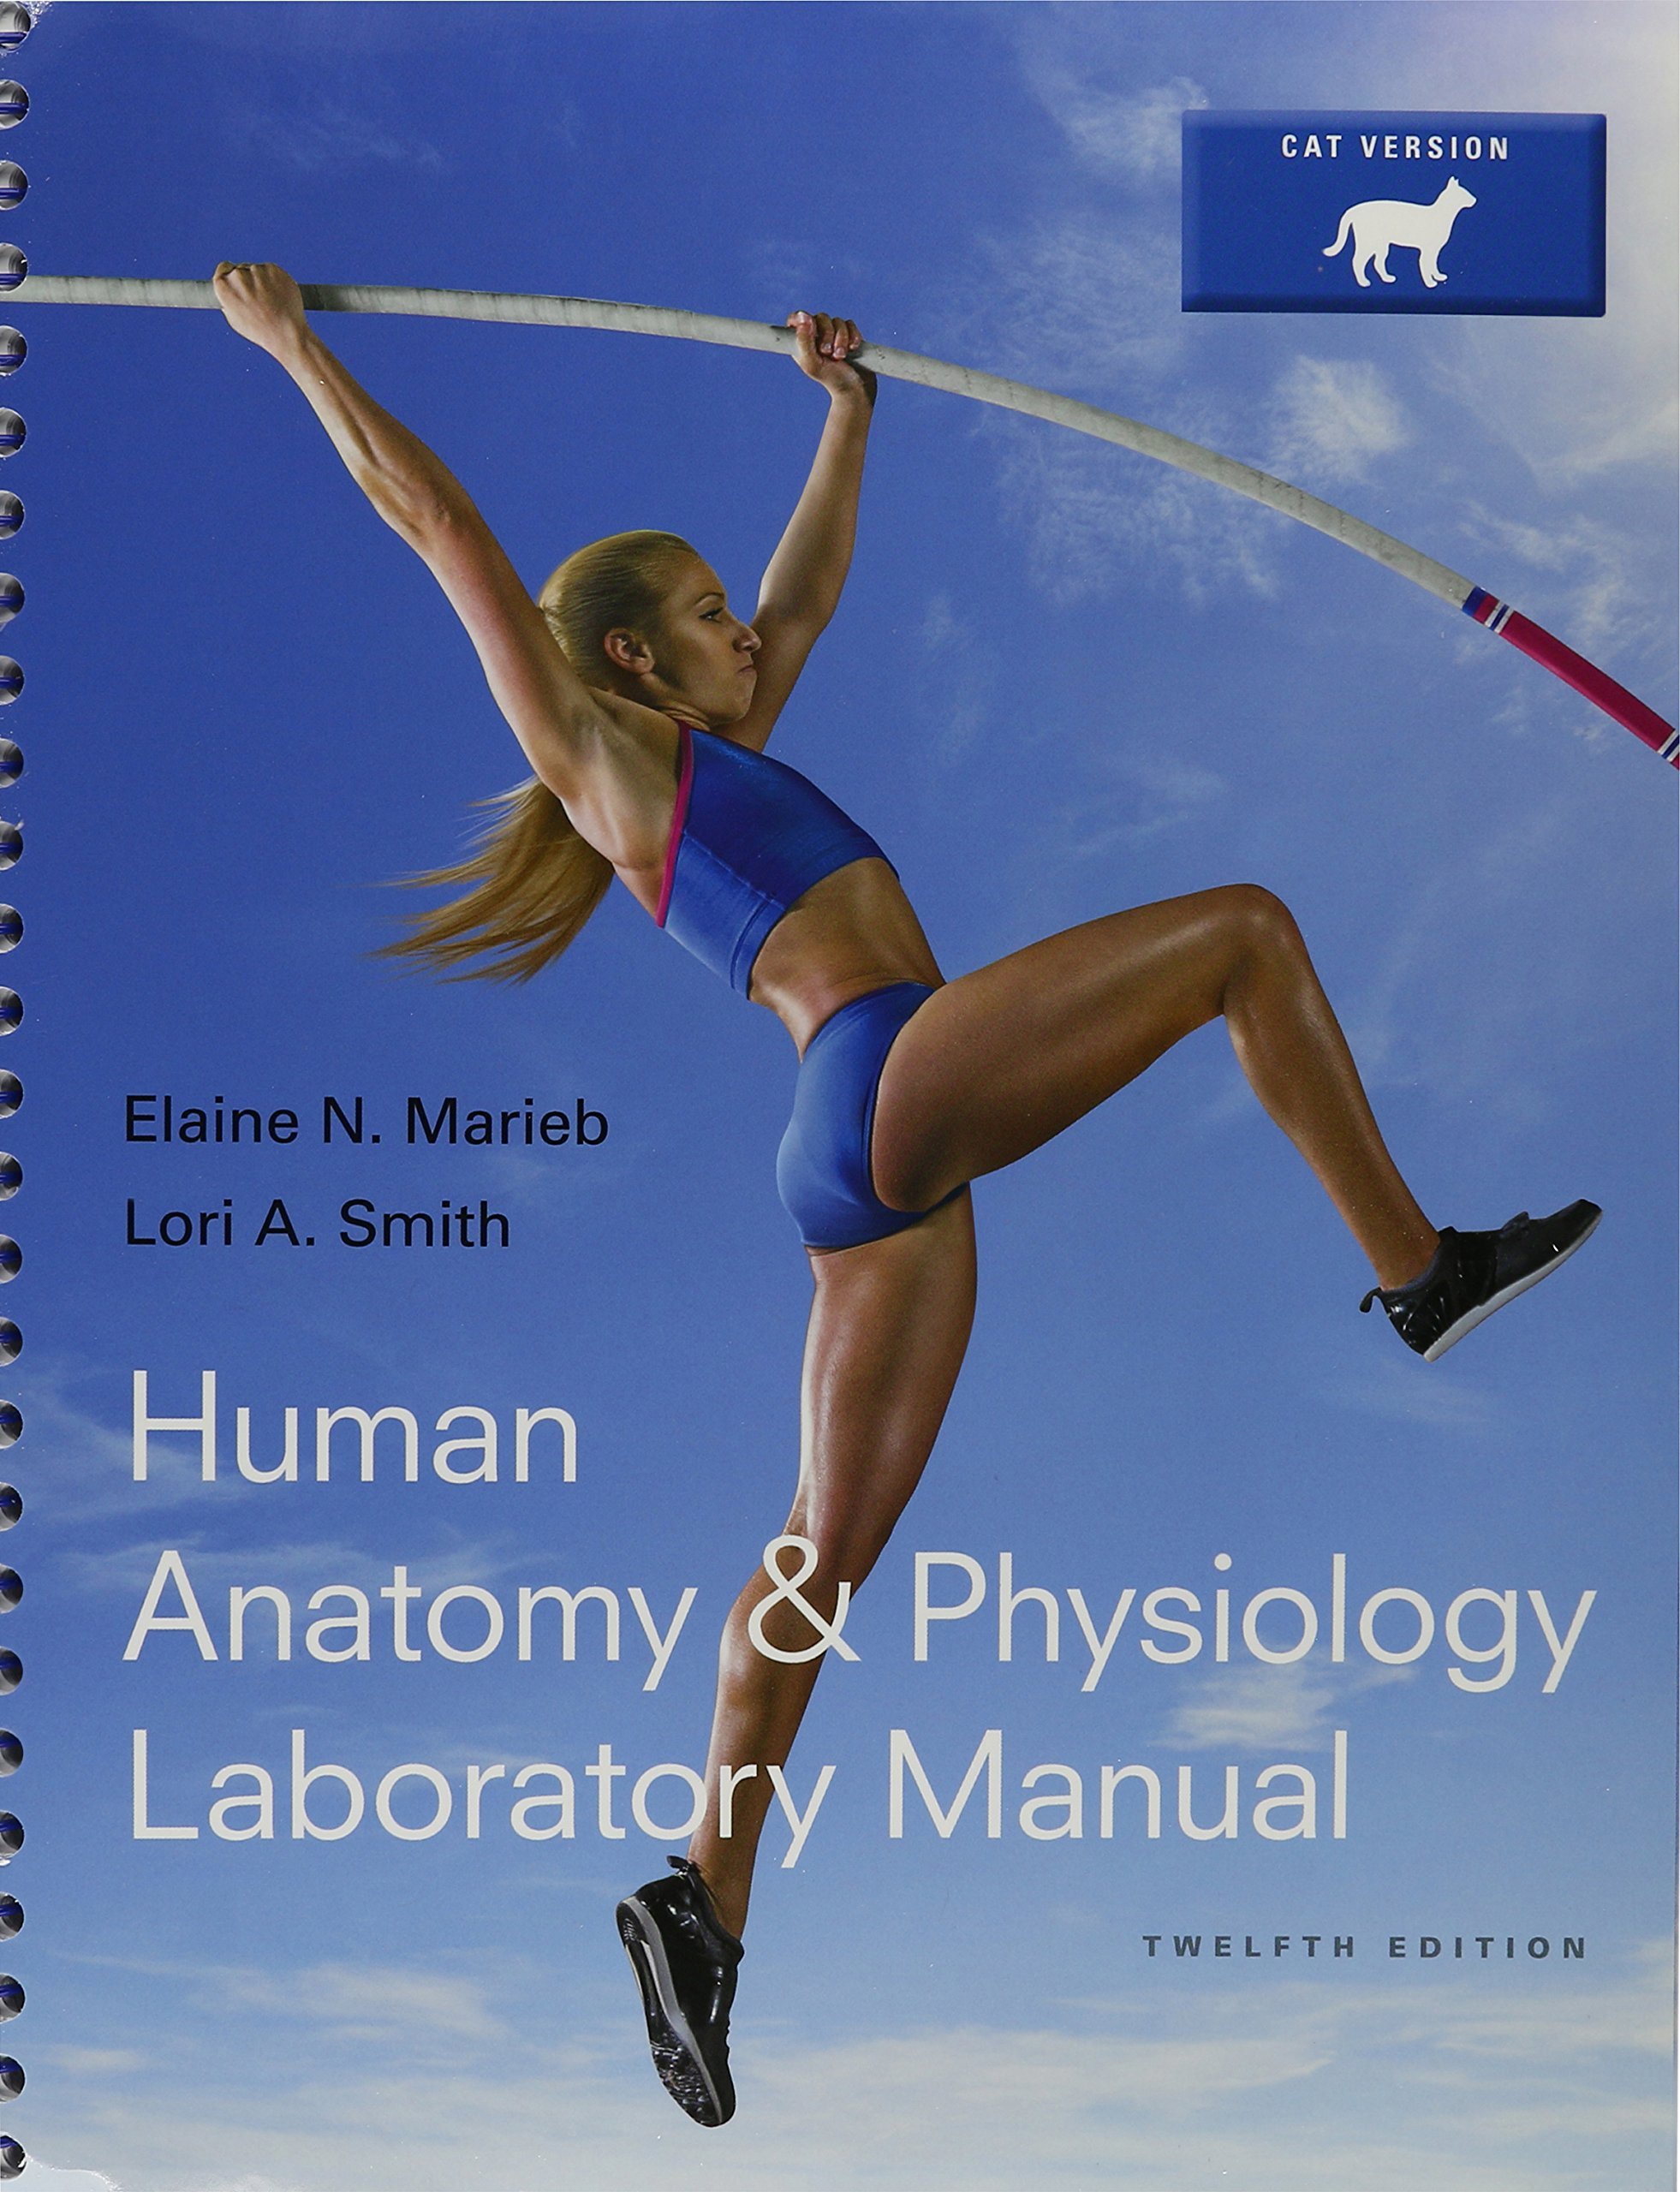 Niedlich Lab Manual For Anatomy And Physiology Bilder - Menschliche ...